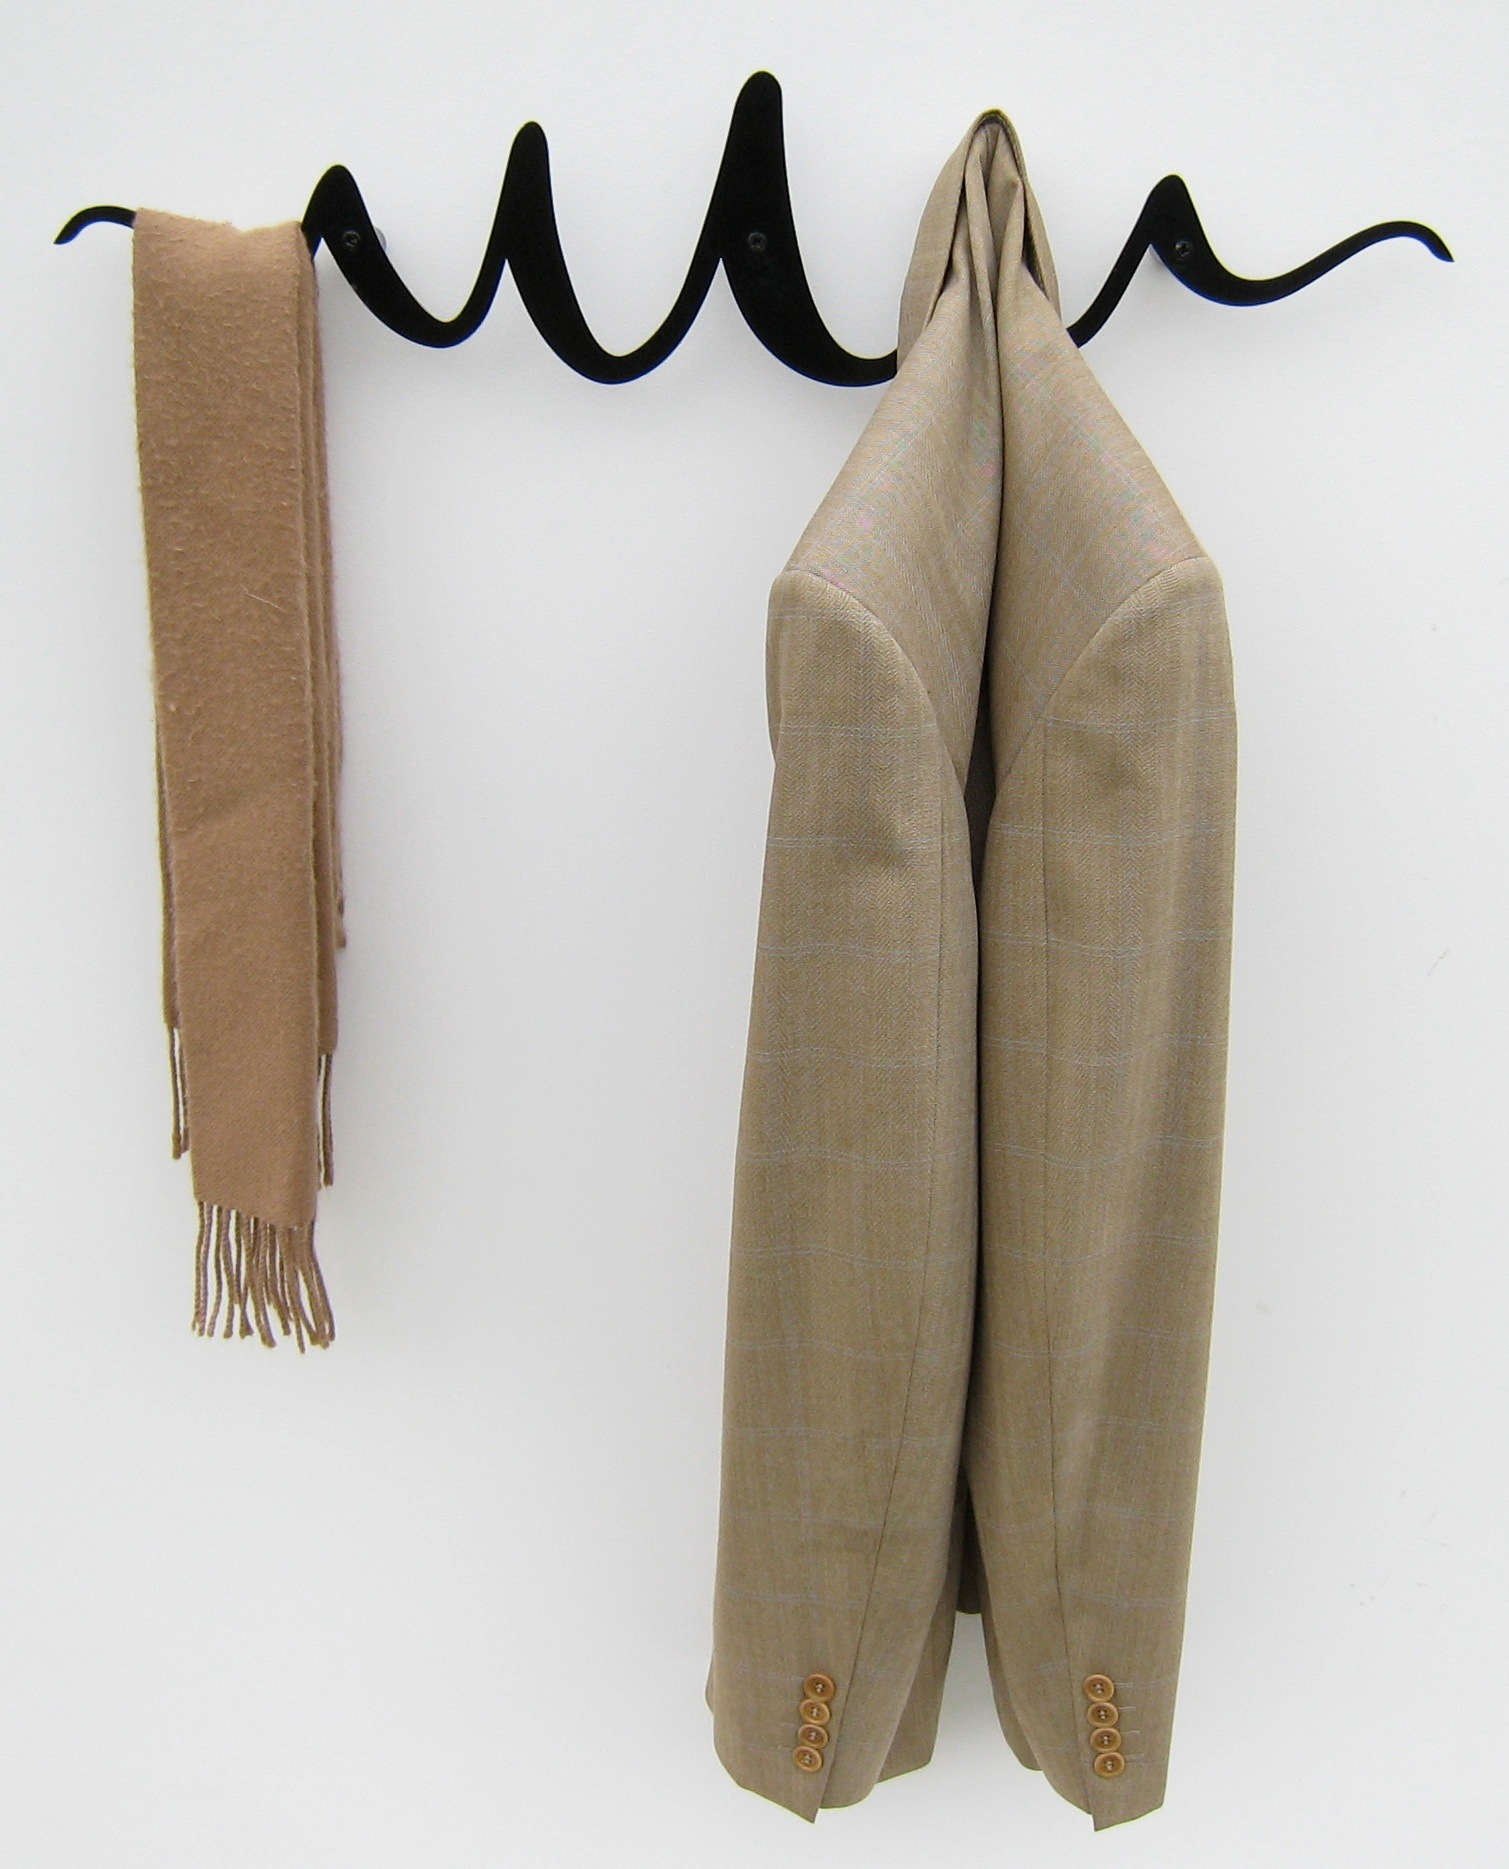 Coat Rack and Roll  A Dose of Simple